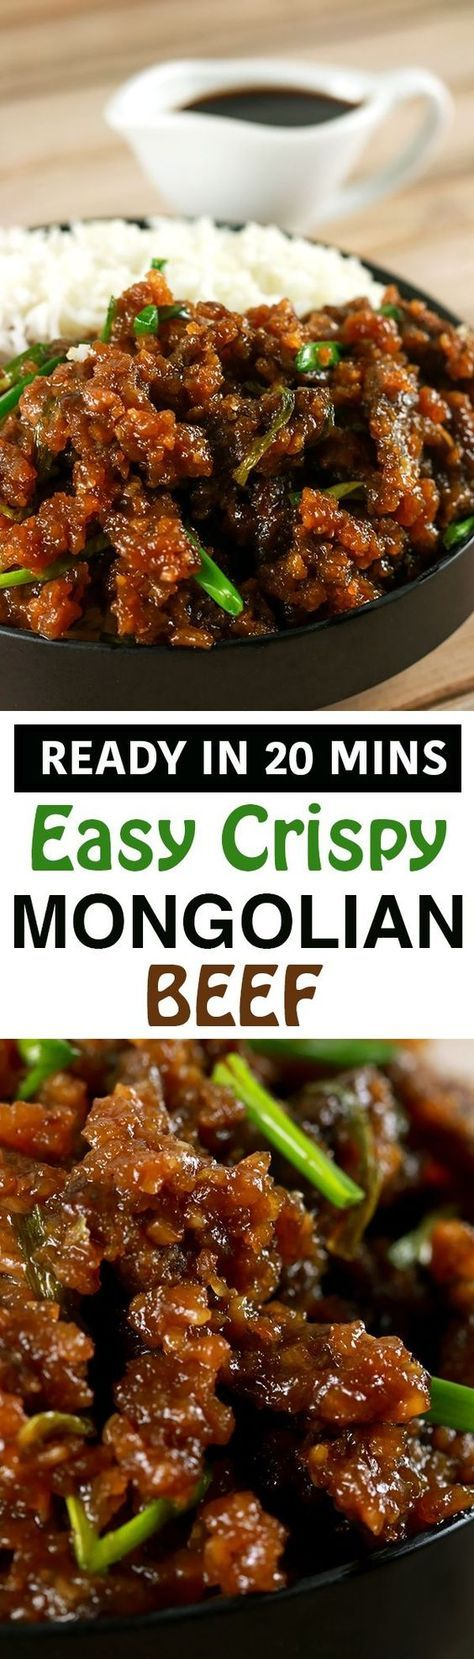 Easy Crispy Mongolian Beef is part of Mongolian beef recipes - This Mongolian Beef recipe is super easy to make and uses simple, readily available ingredients! Whip this up in under 20 minutes and have the perfect midweek dinner meal!